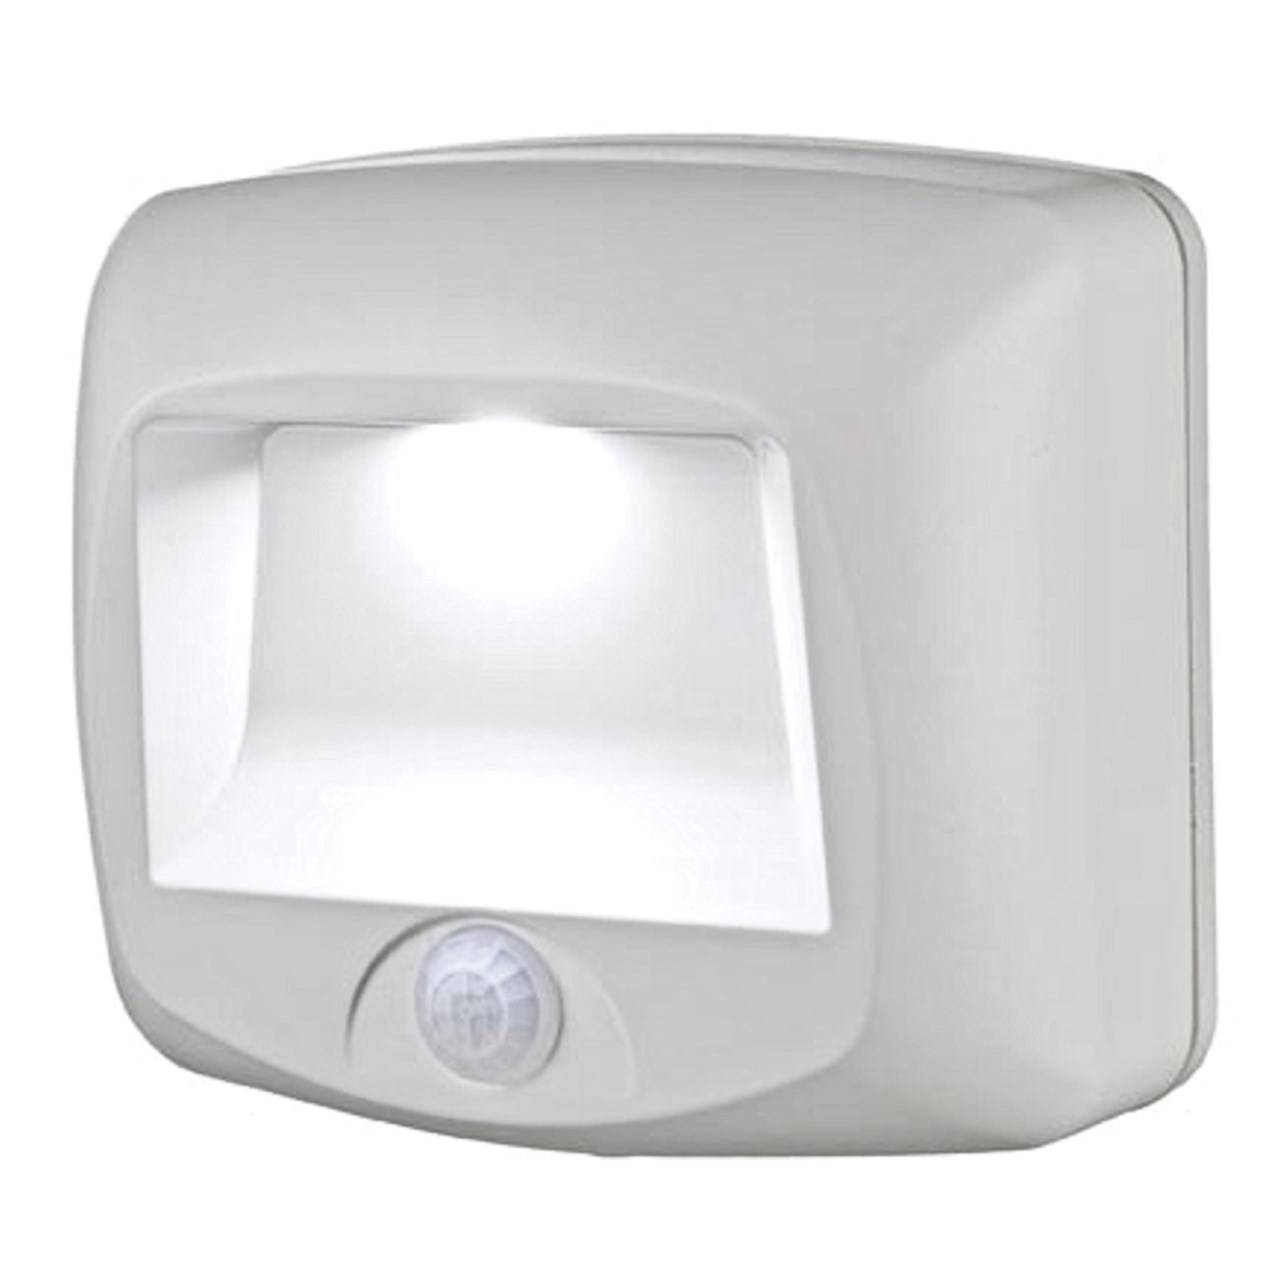 Motion sensor tubelight